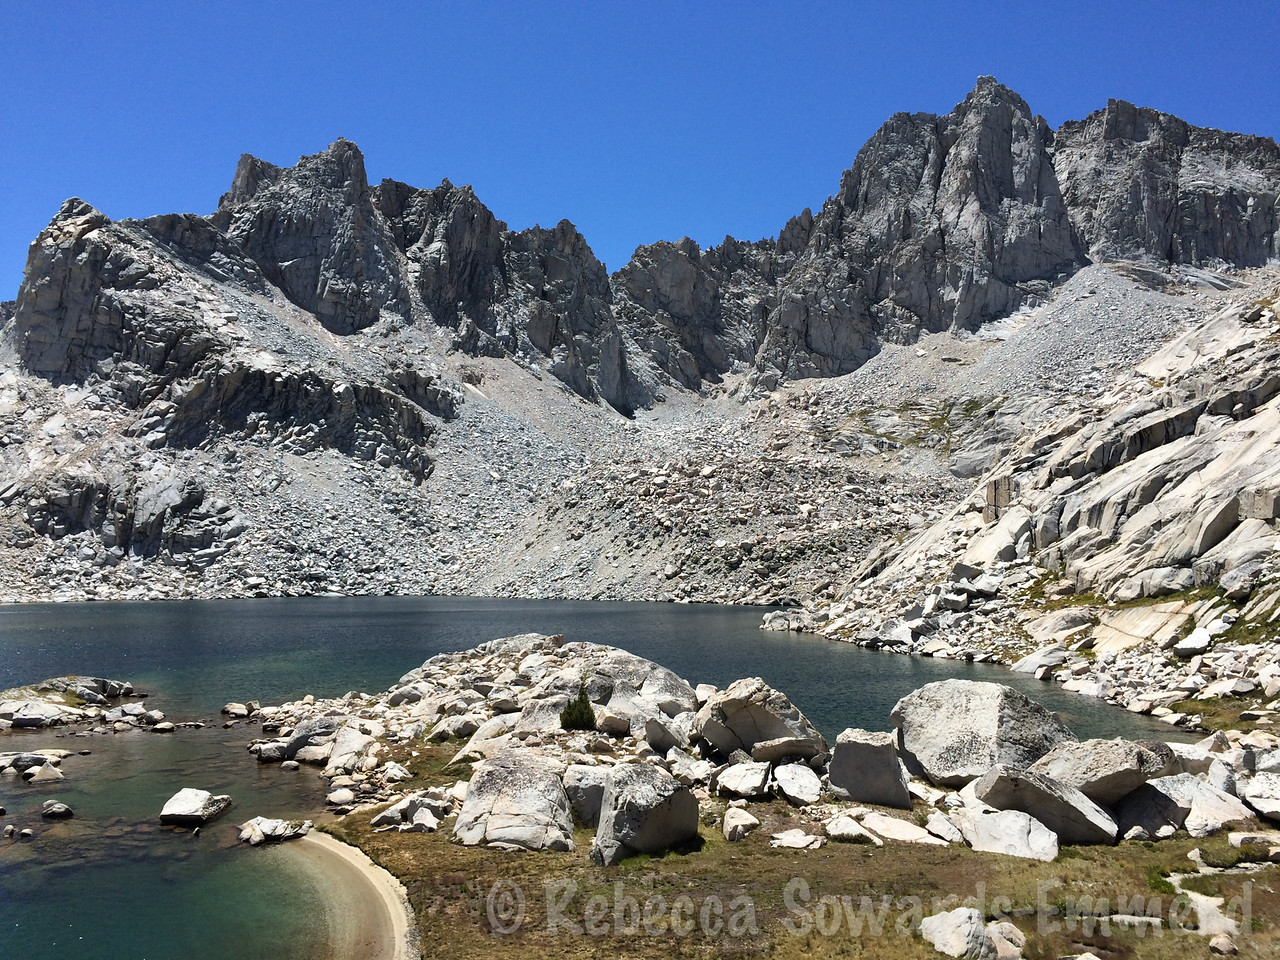 The beautiful Kern-Kings divide towering above the unnamed lake